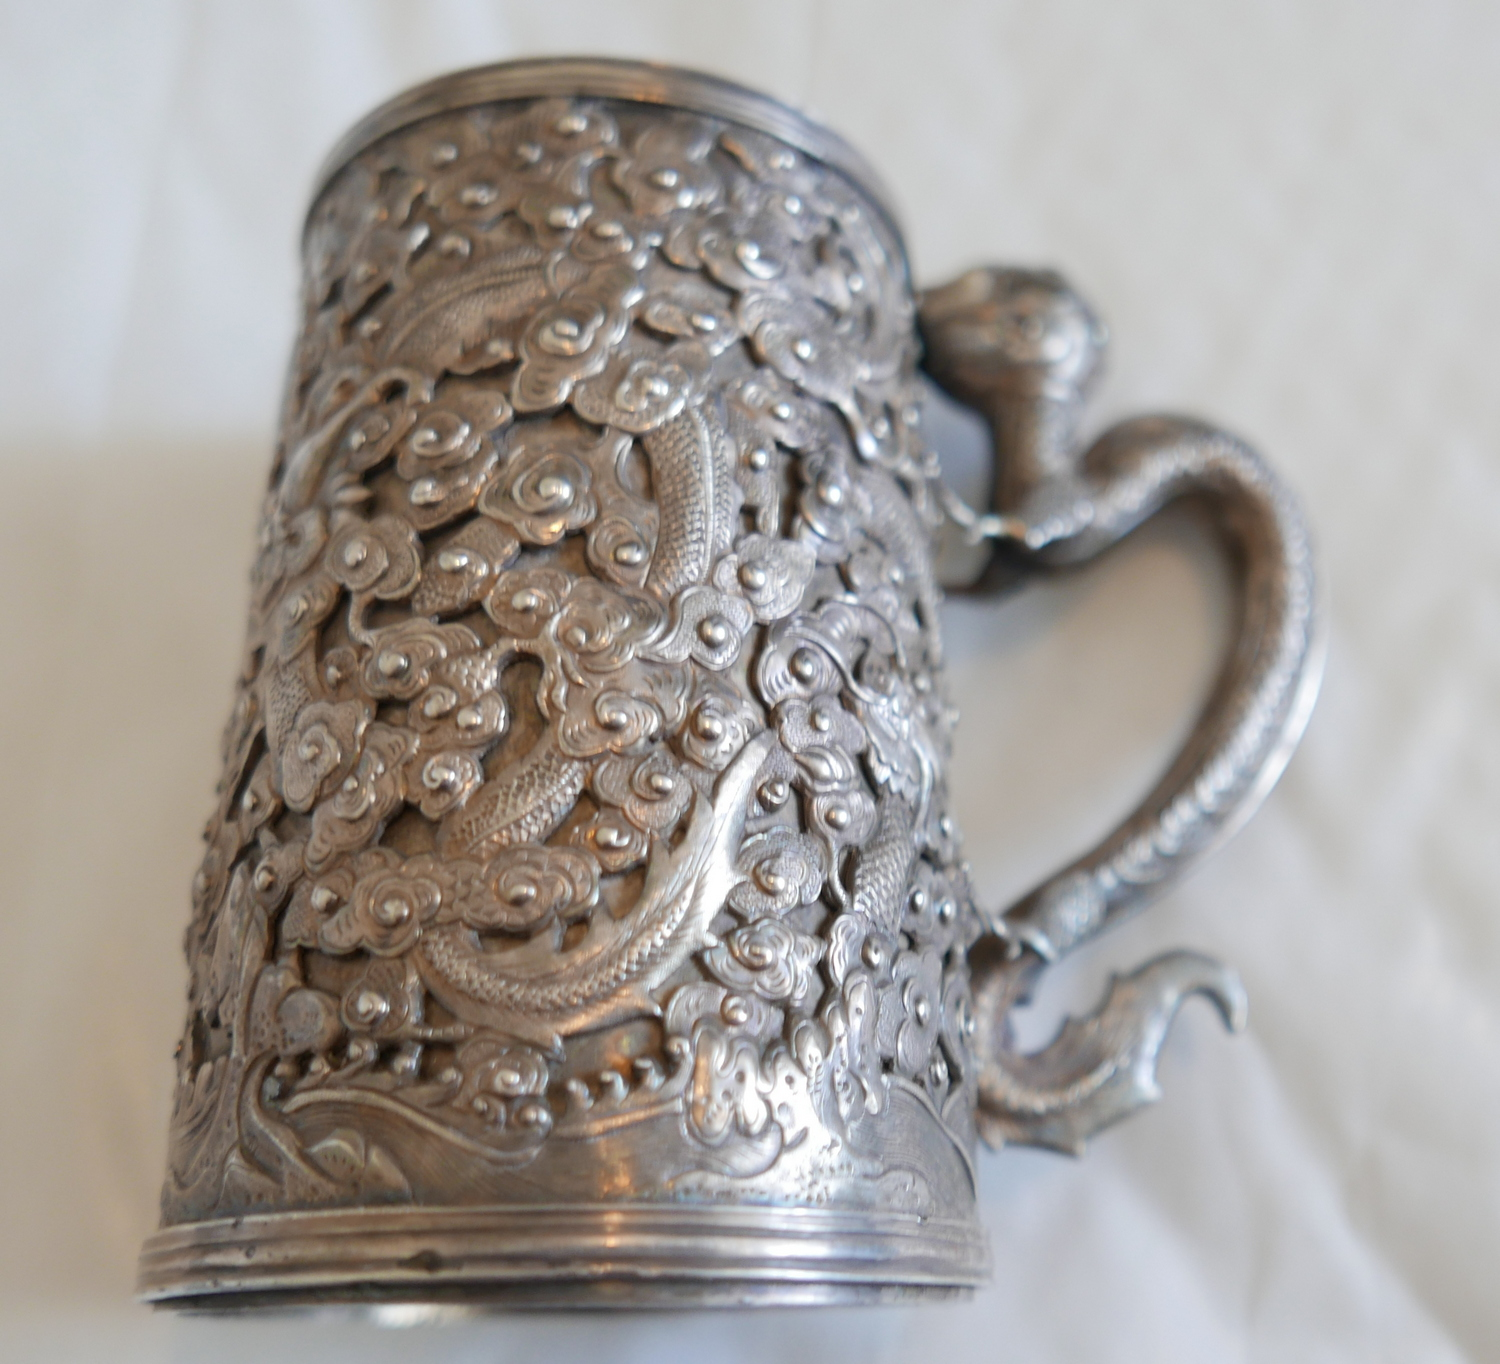 """Lot 57 - Antique c1880-1900 Chinese Silver Tankard 4 5/8"""" (11mm) tall with Dragon Handle-327 grams."""